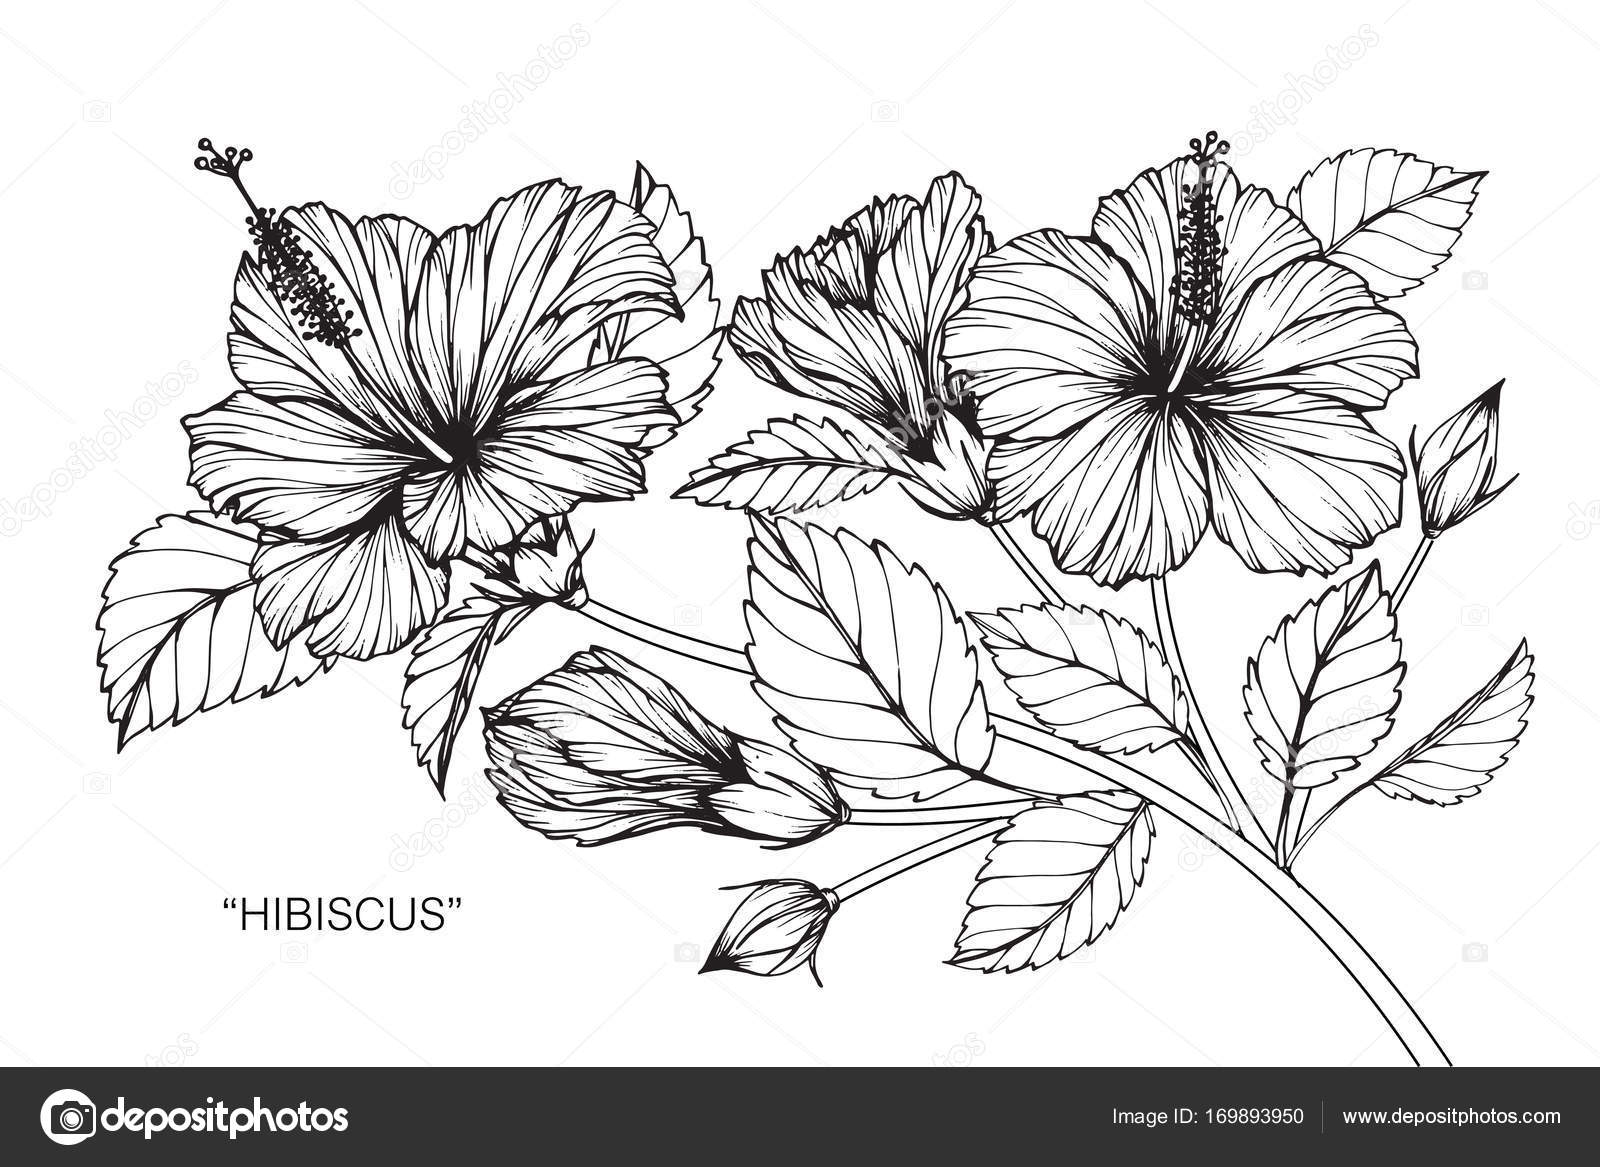 1600x1167 Hibiscus Flower. Drawing And Sketch With Black And White Line Art